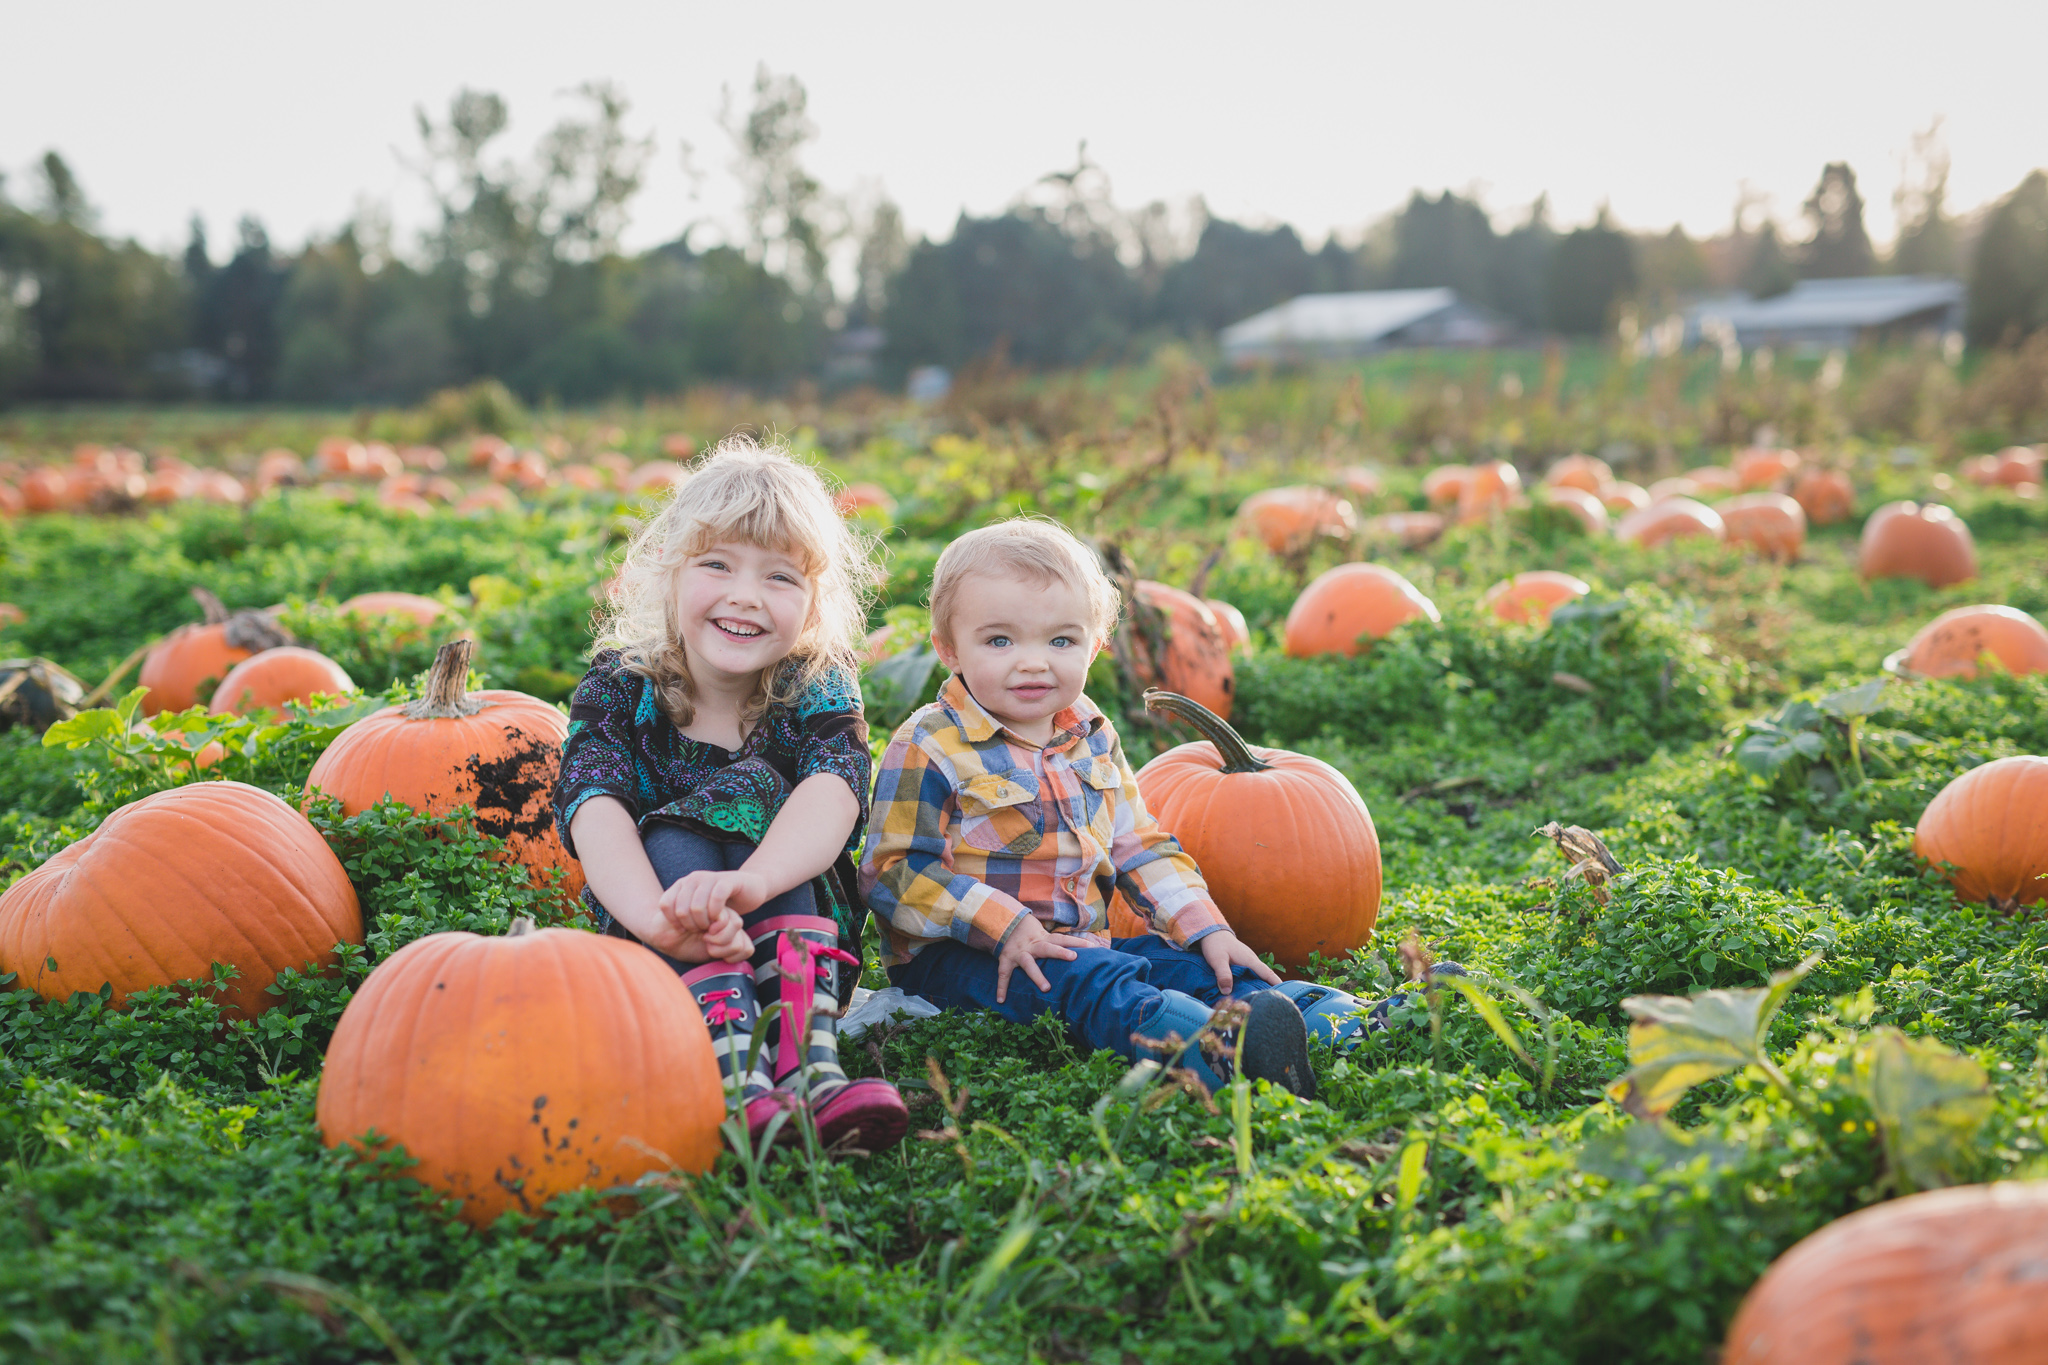 pumpkin patch, family photos, rondriso farms, fall photos, family photographer, vancouver, wink photography, brother sister, pumpkin patch photography, fraser valley photographer